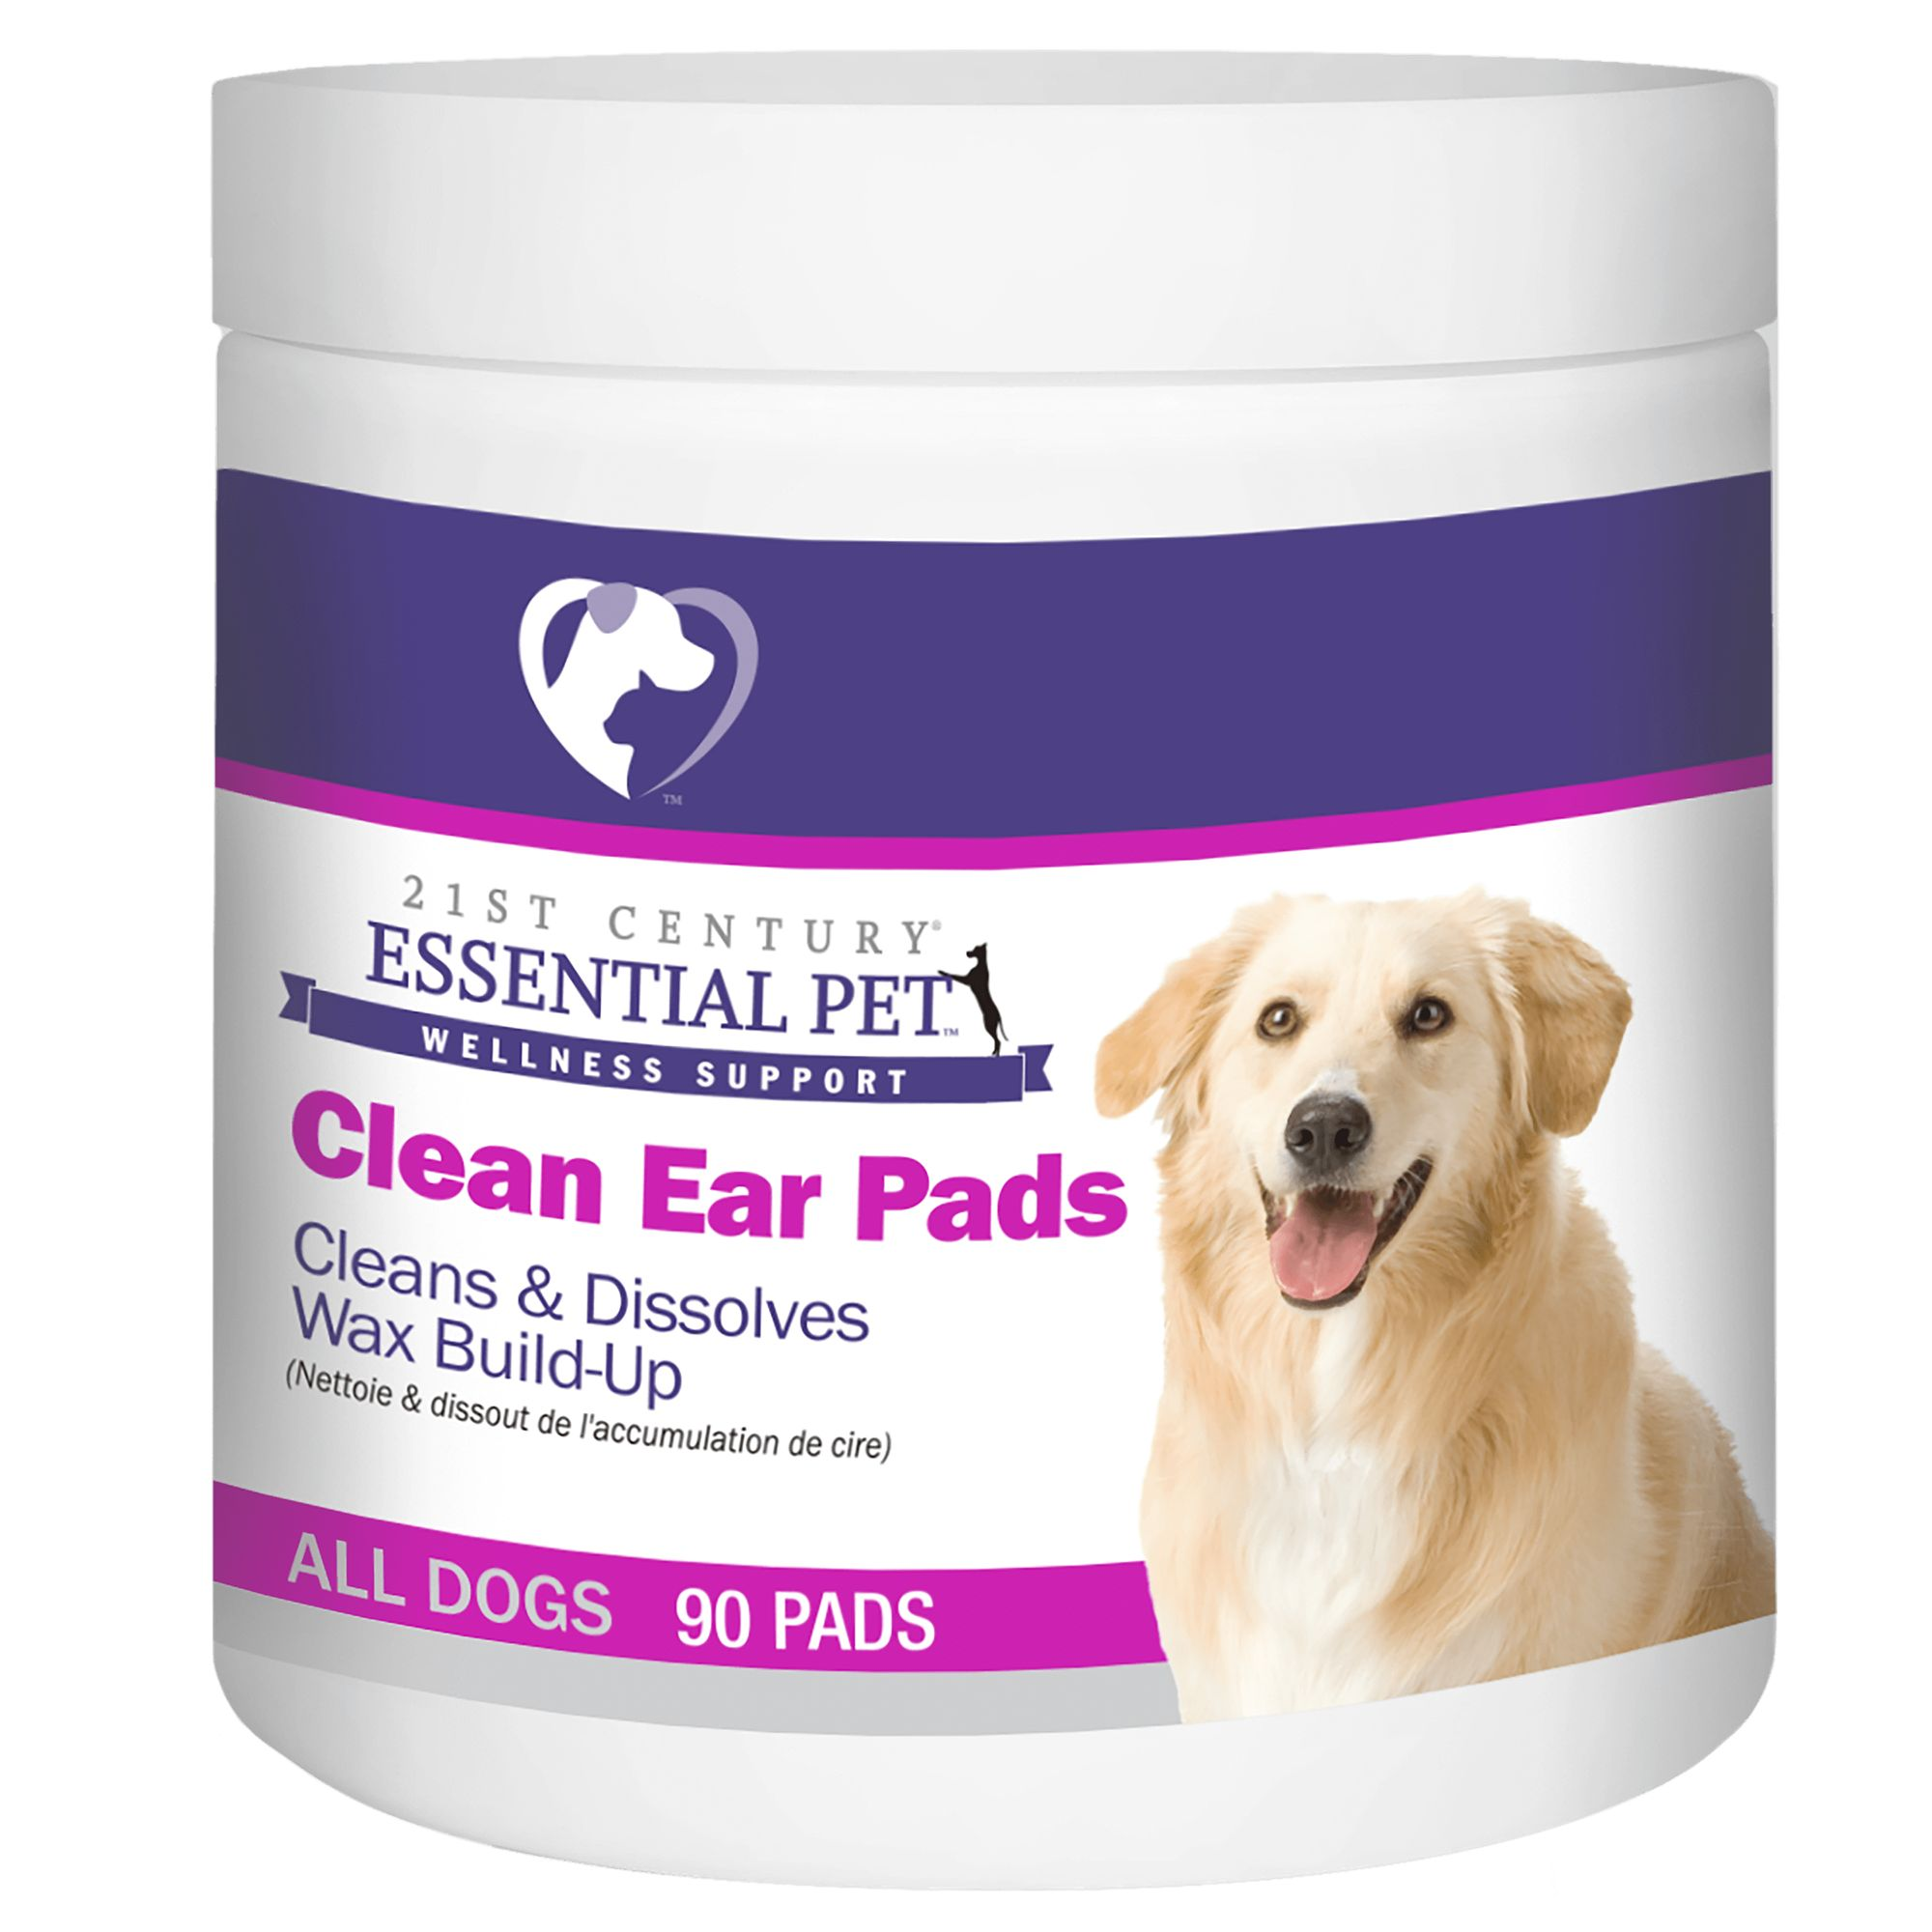 21st Century Clean Ear Dog Pads Size 90 Count